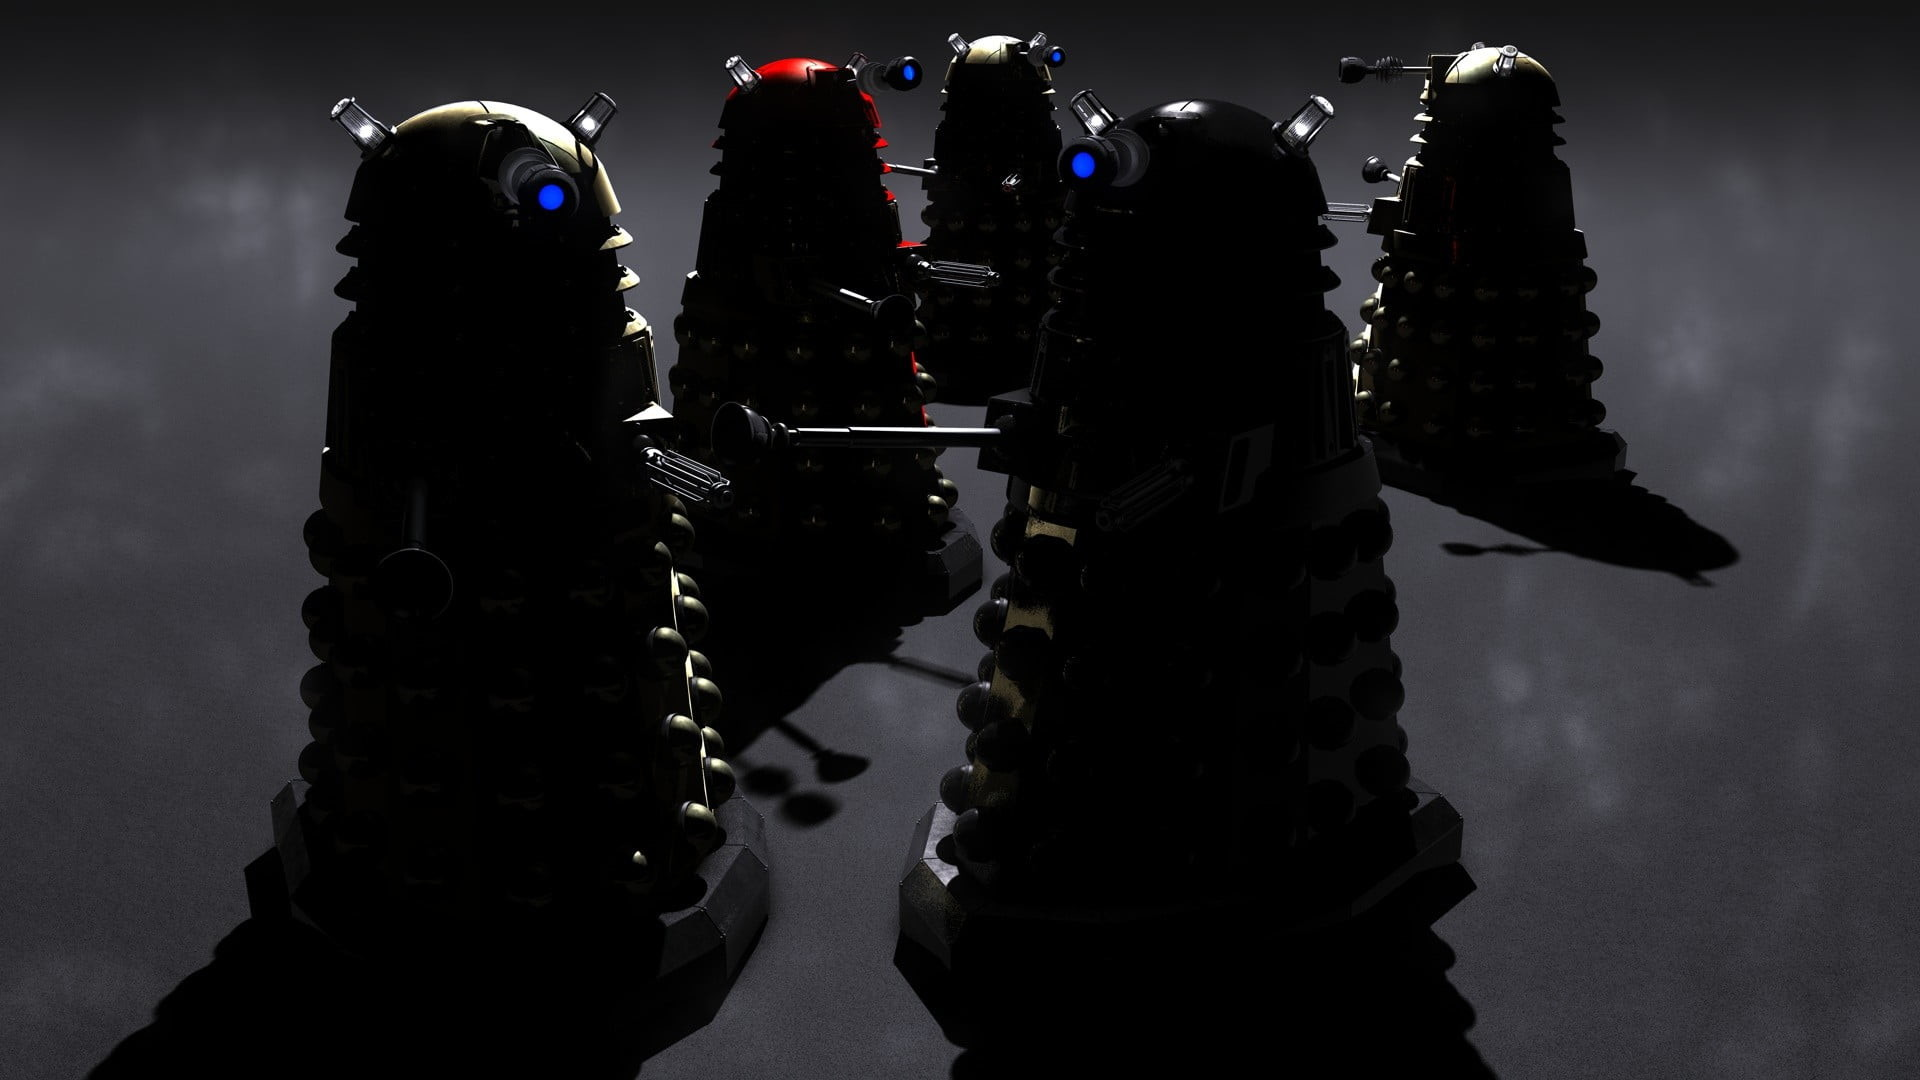 1920x1080 five assorted-color robots, Doctor Who, Daleks, science fiction HD wallpaper